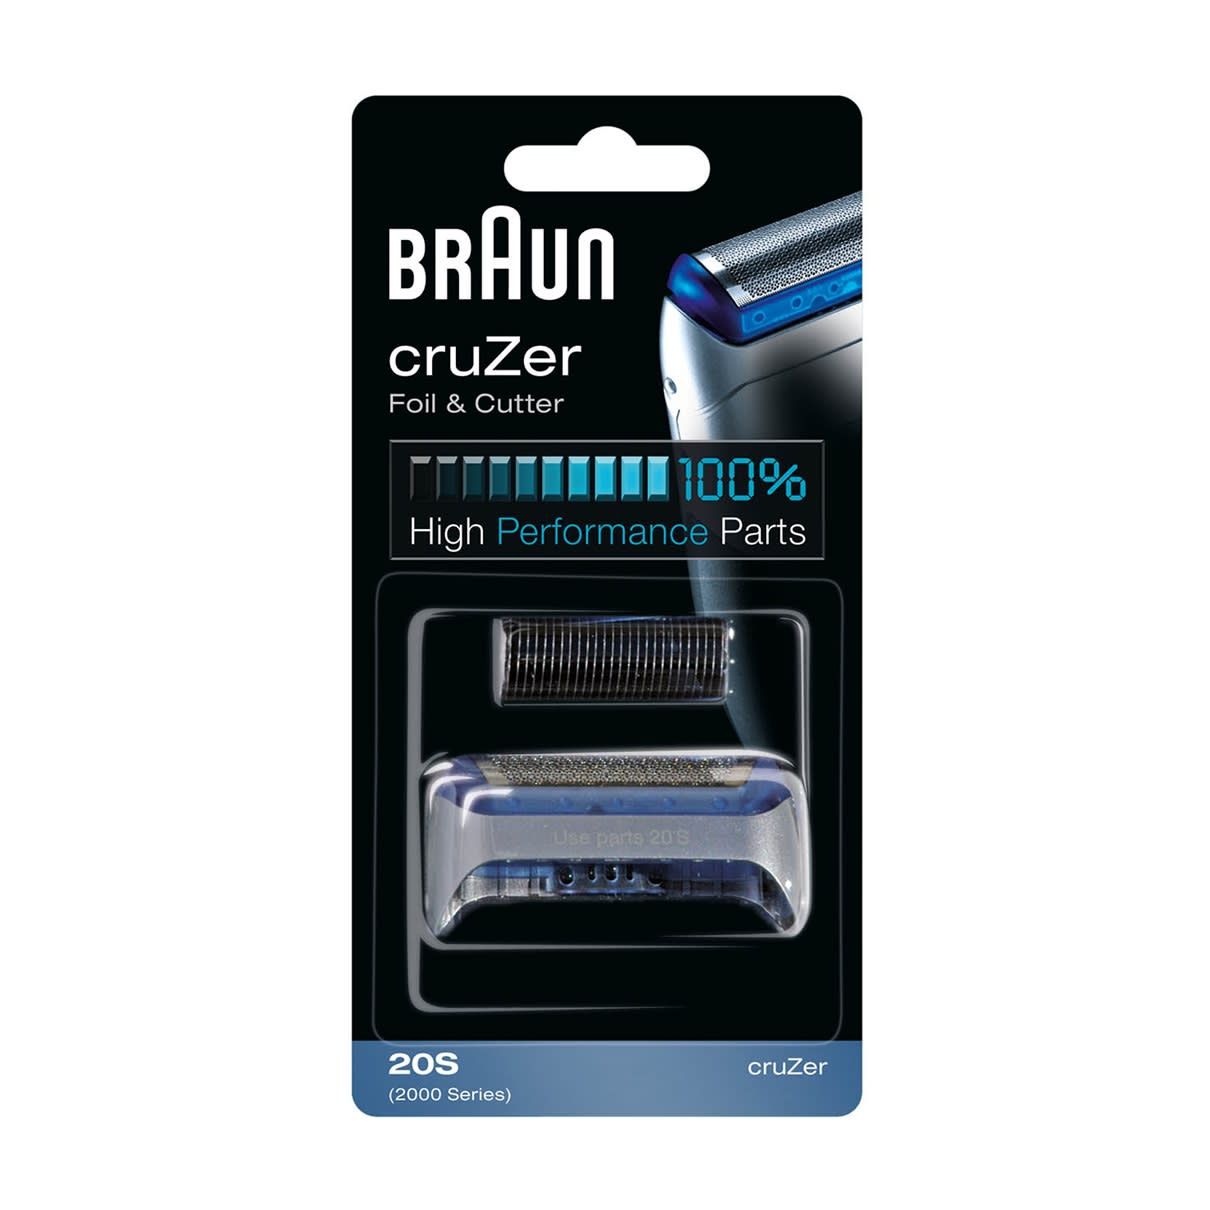 cruZer Foil & Cutter 20S replacement pack silver - packaging